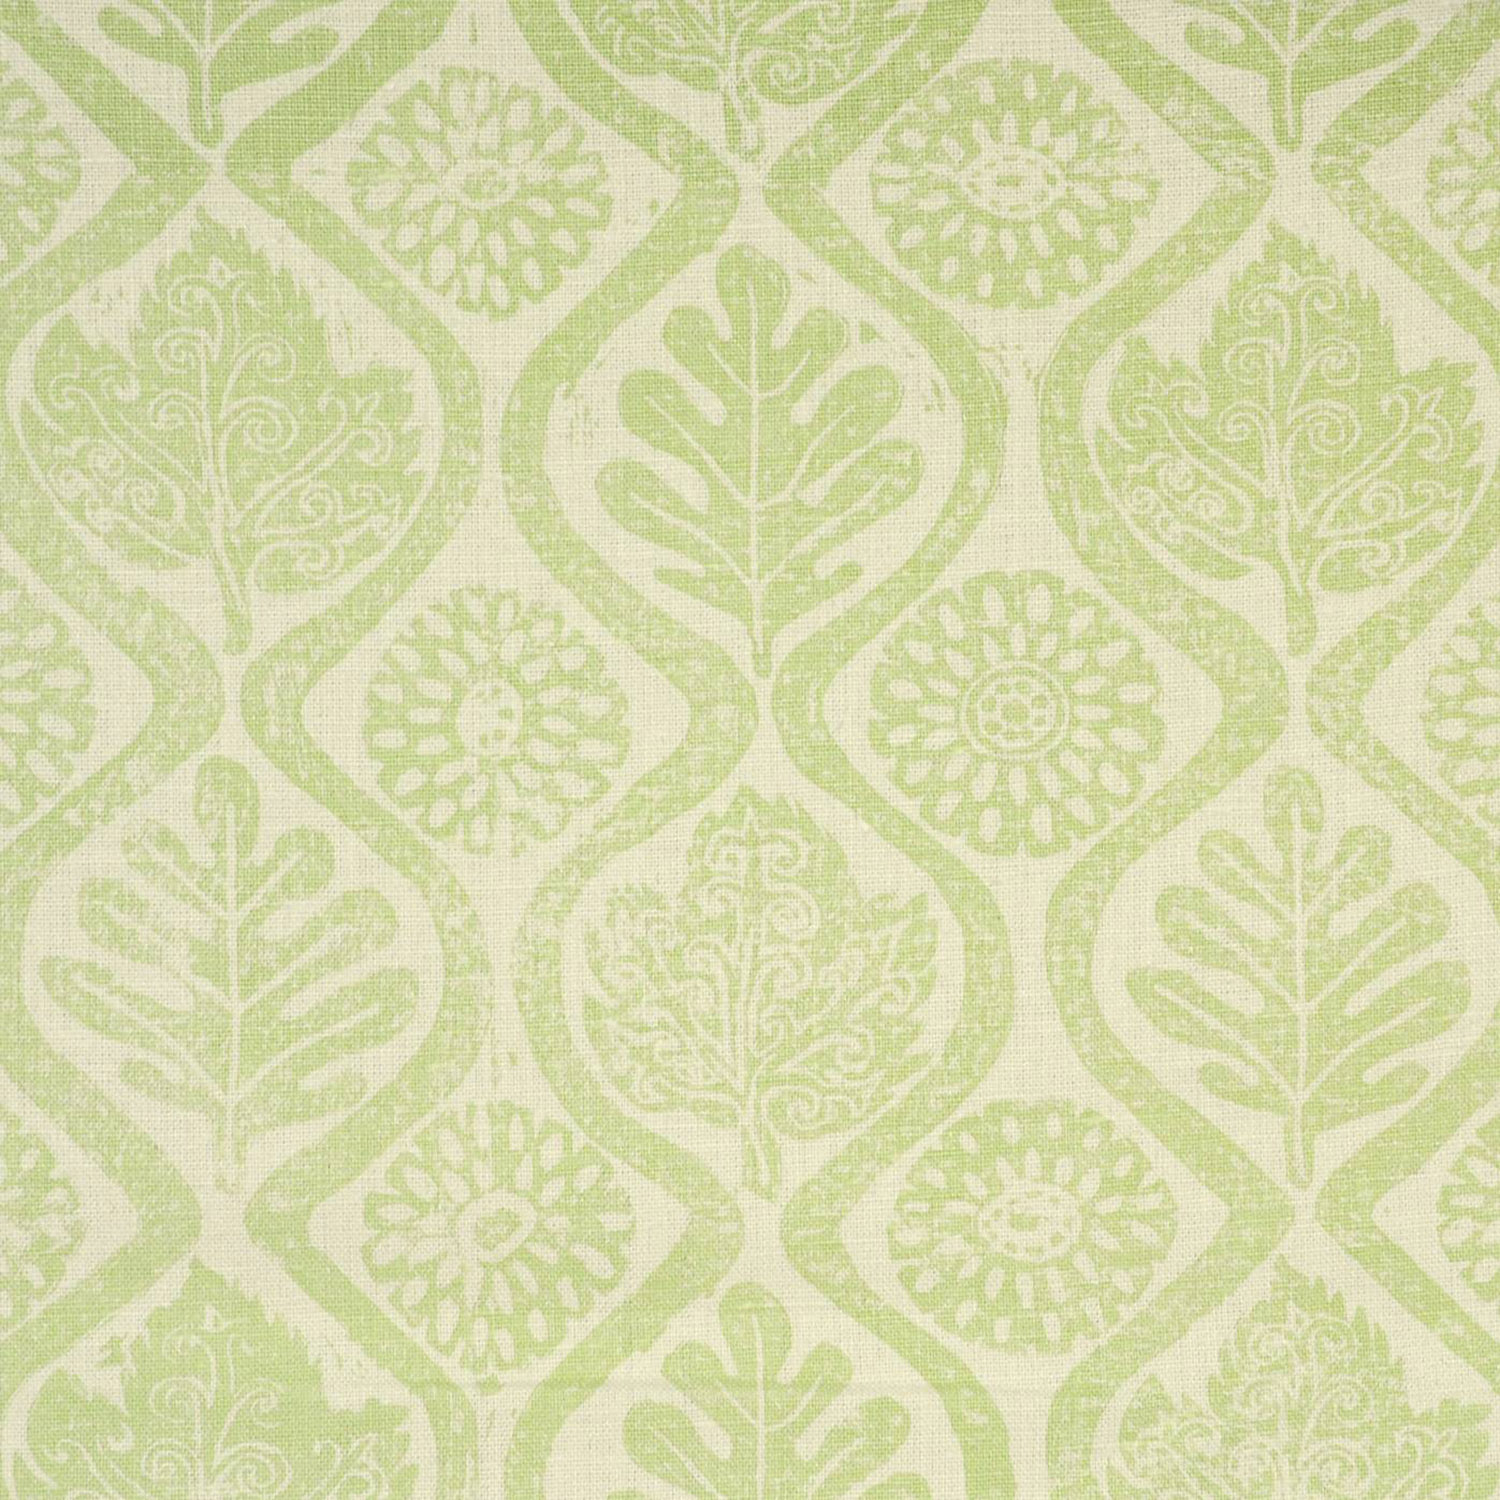 <p><strong>OAKLEAVES</strong>lime 6200-02<a href=/the-peggy-angus-collection/oakleaves-lime-6200-02>More →</a></p>